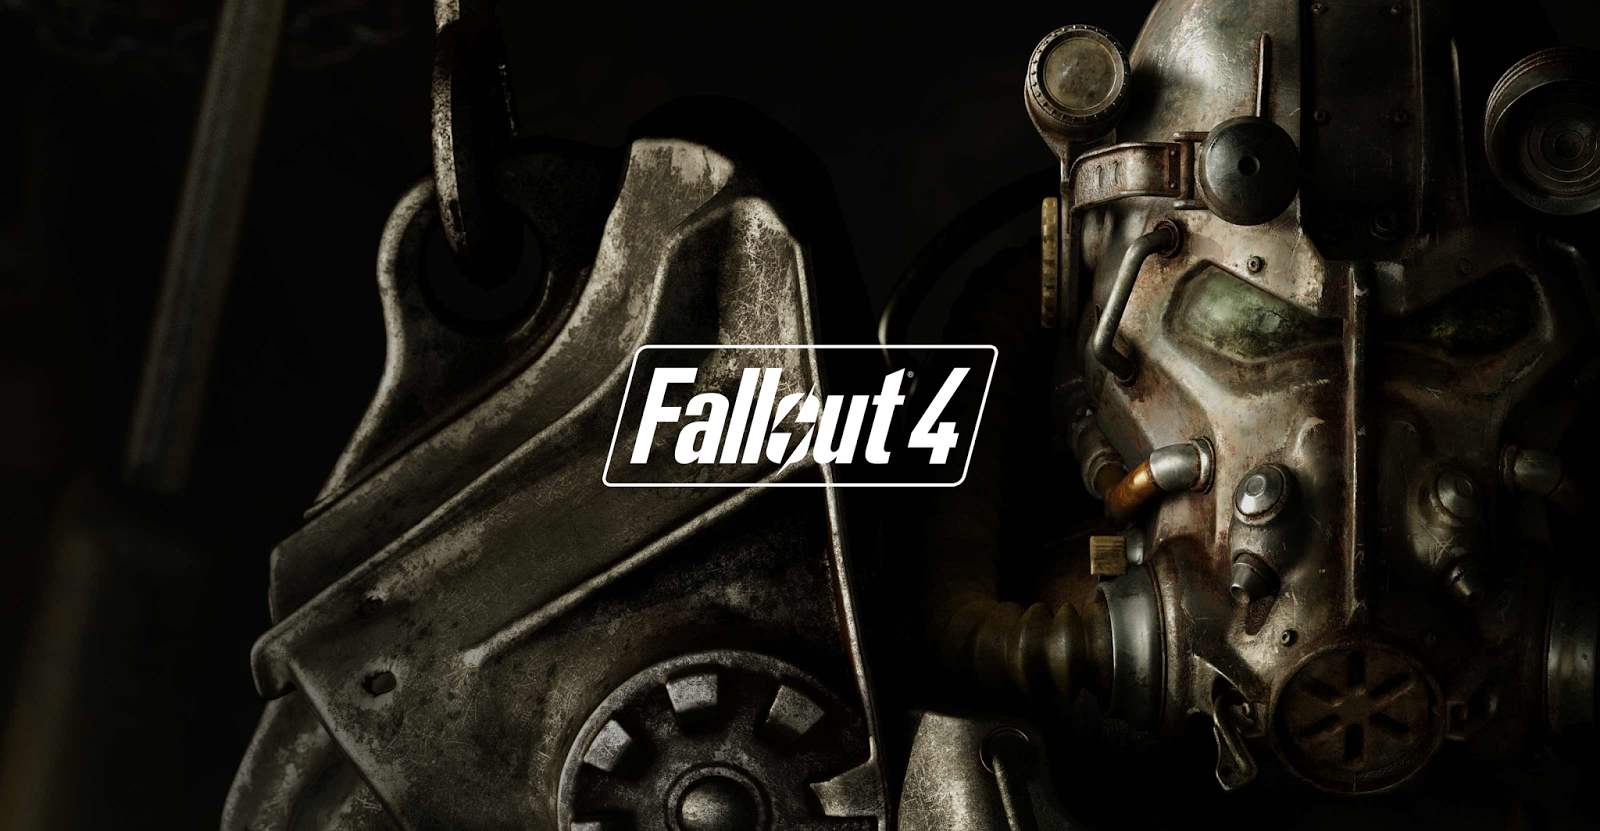 Fallout 4 game HD Wallpaper